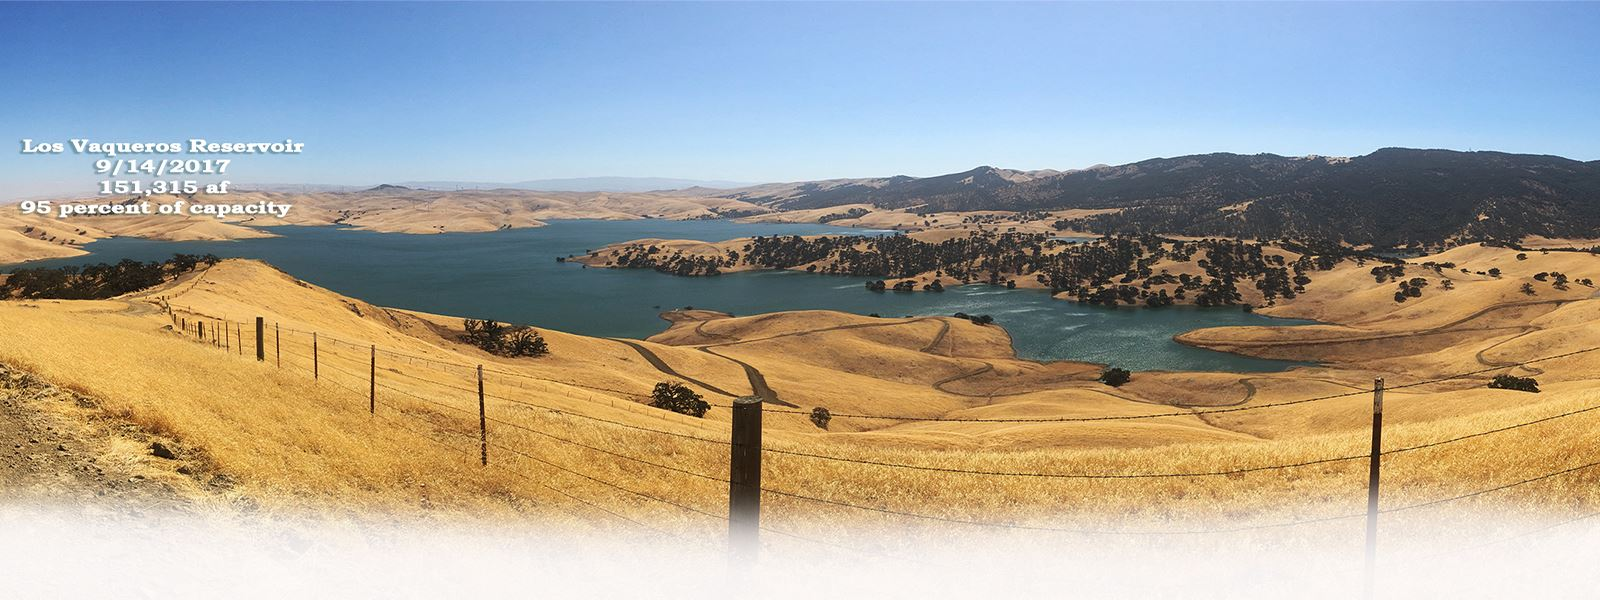 contra costa water district ca official website